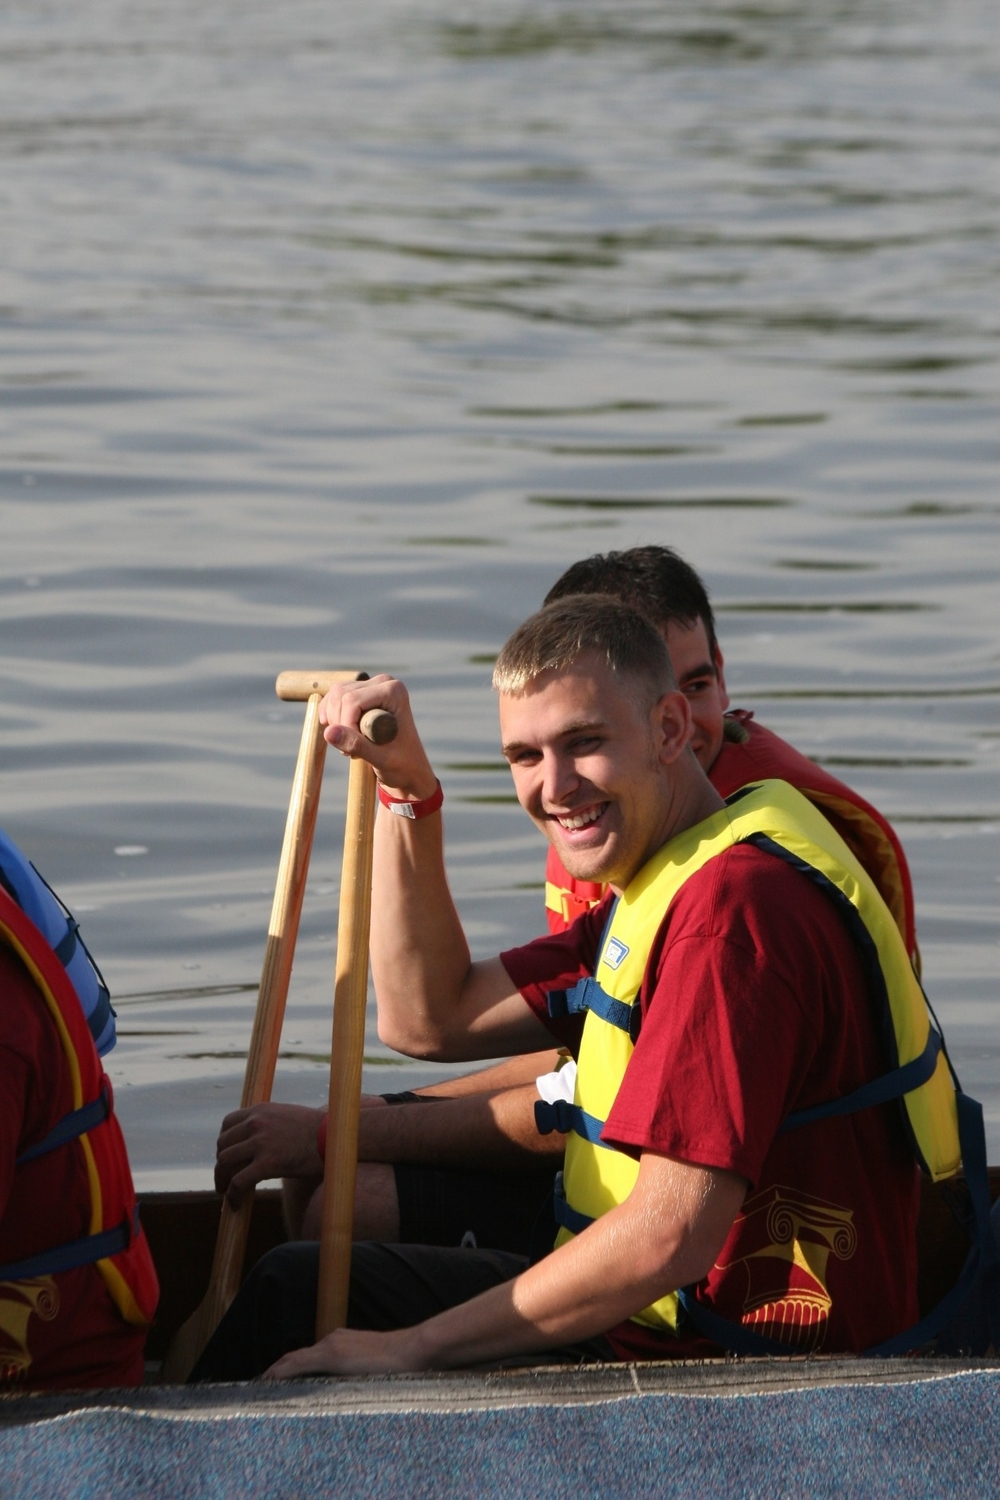 Dragon Boat race while attending UW Oshkosh in 2007.